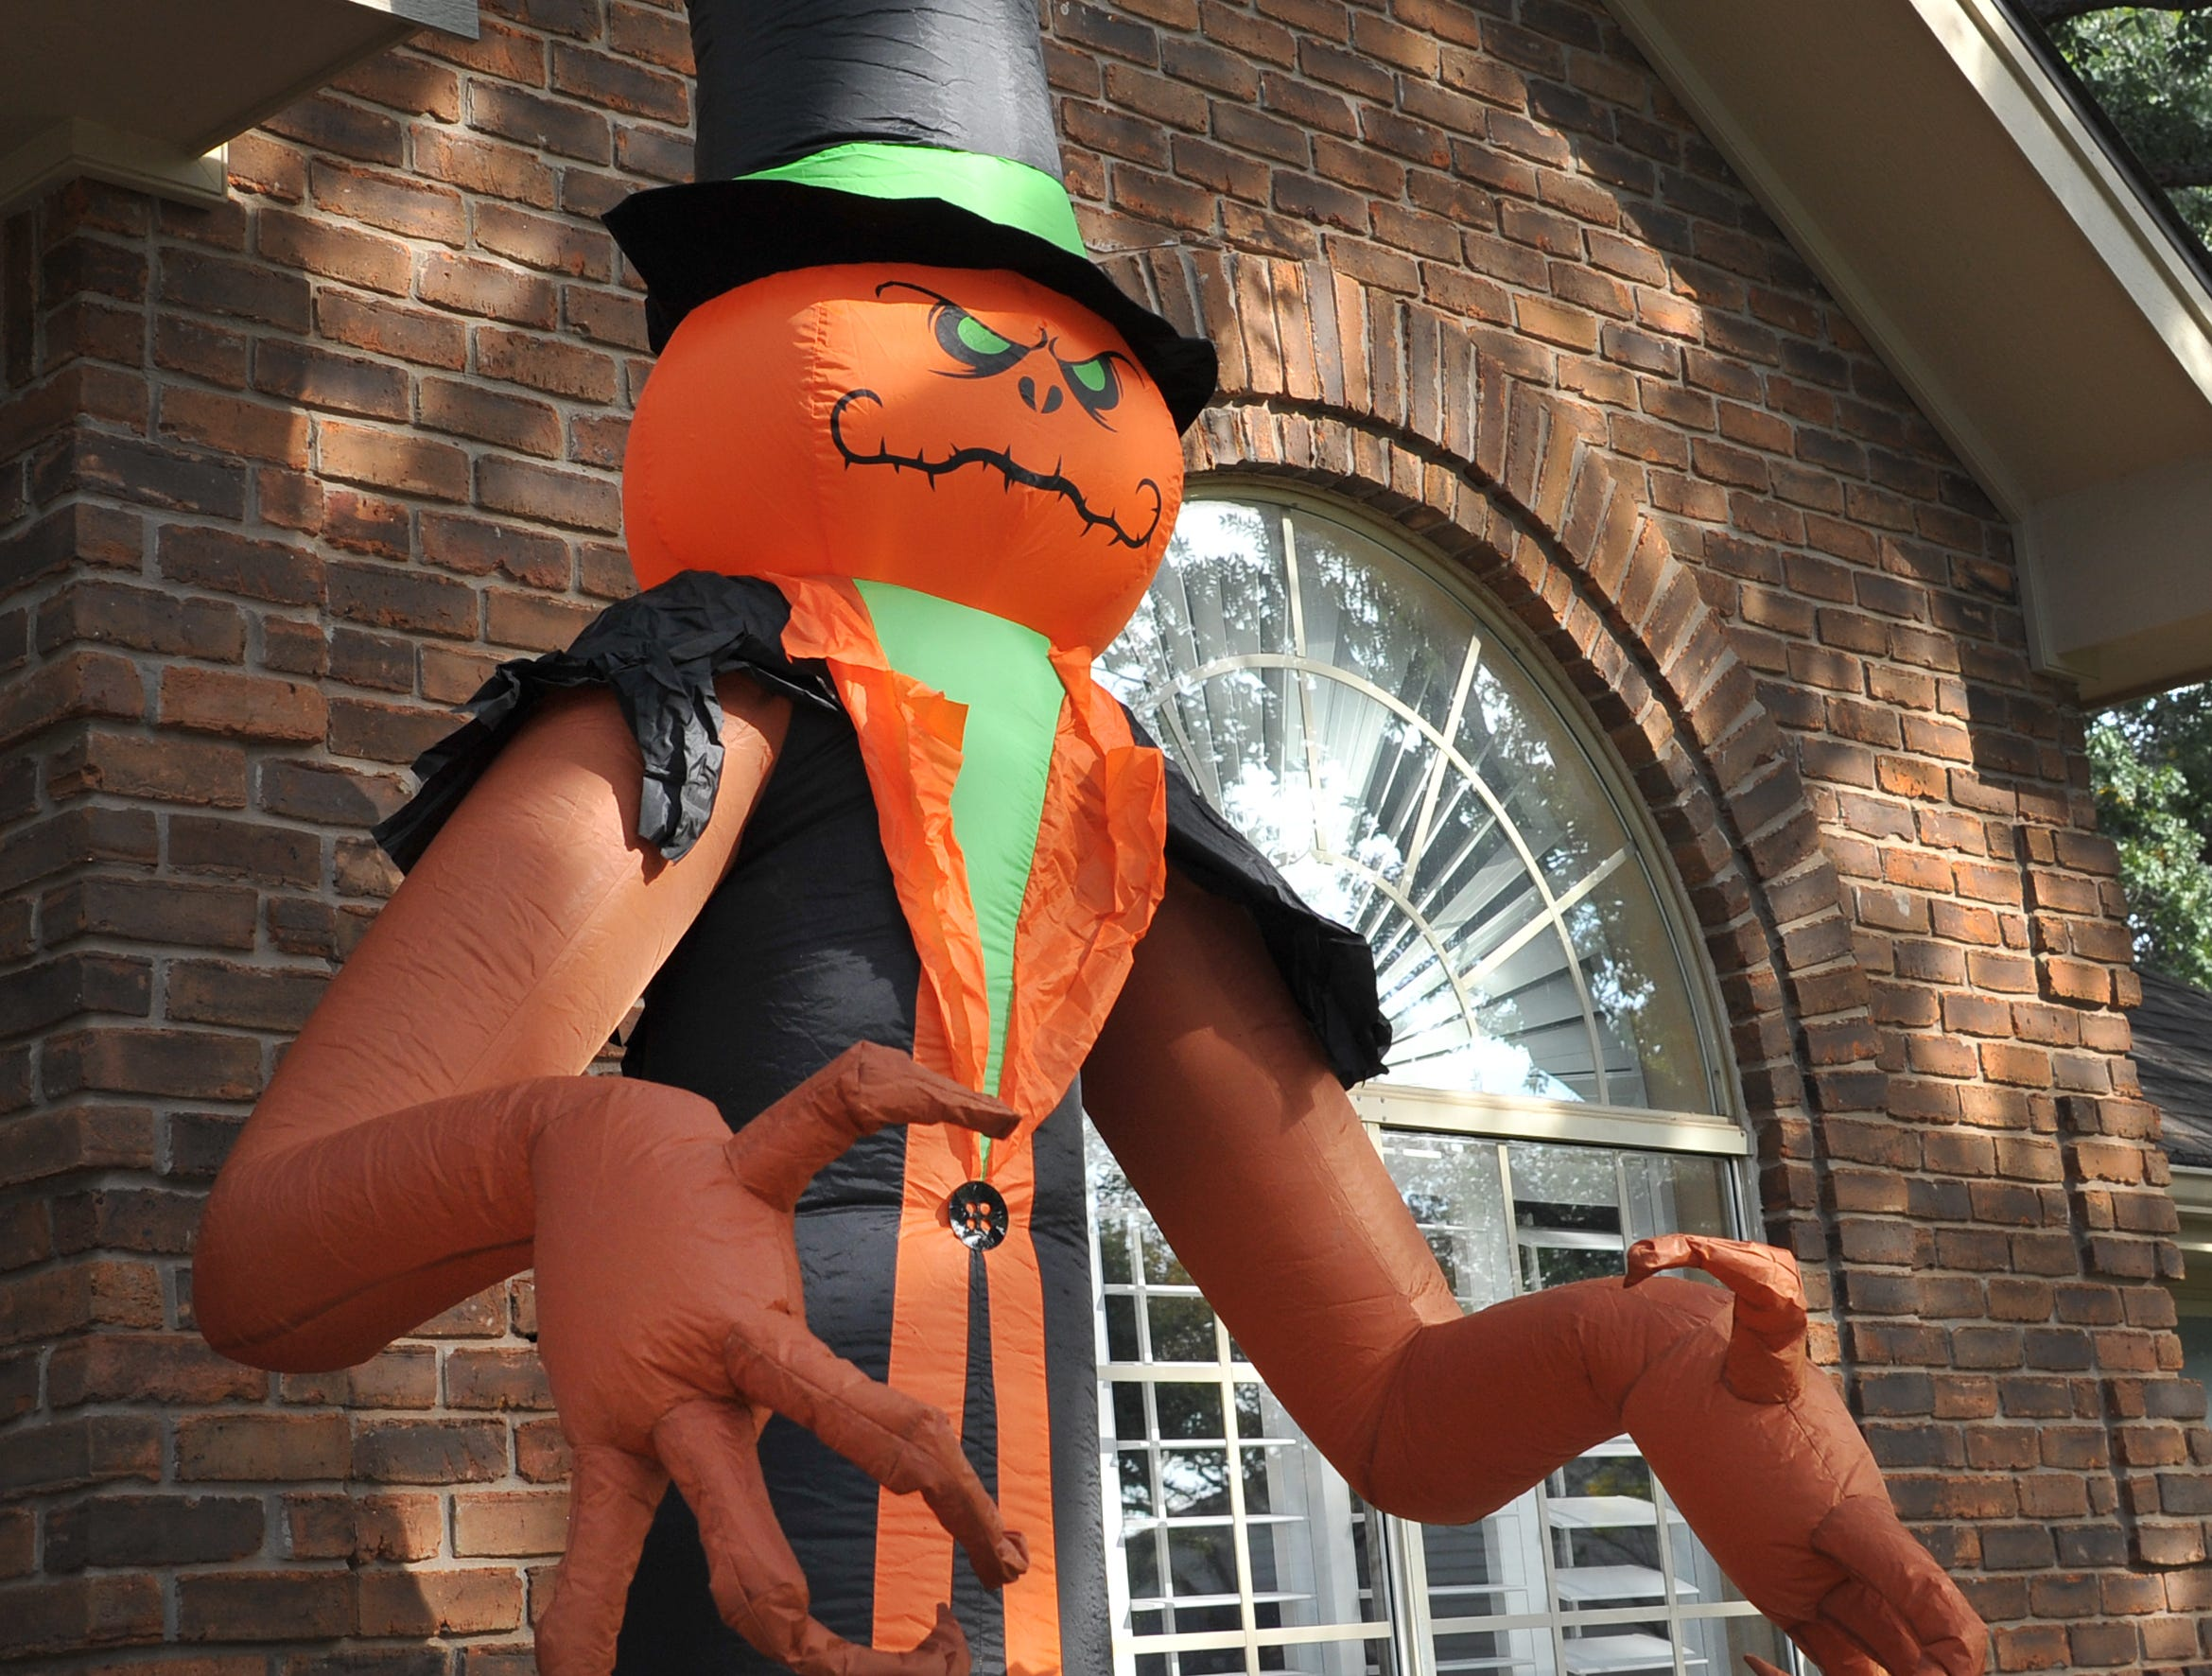 A home in Tanglewood is decorated with a large inflatable ghoul for Halloween.